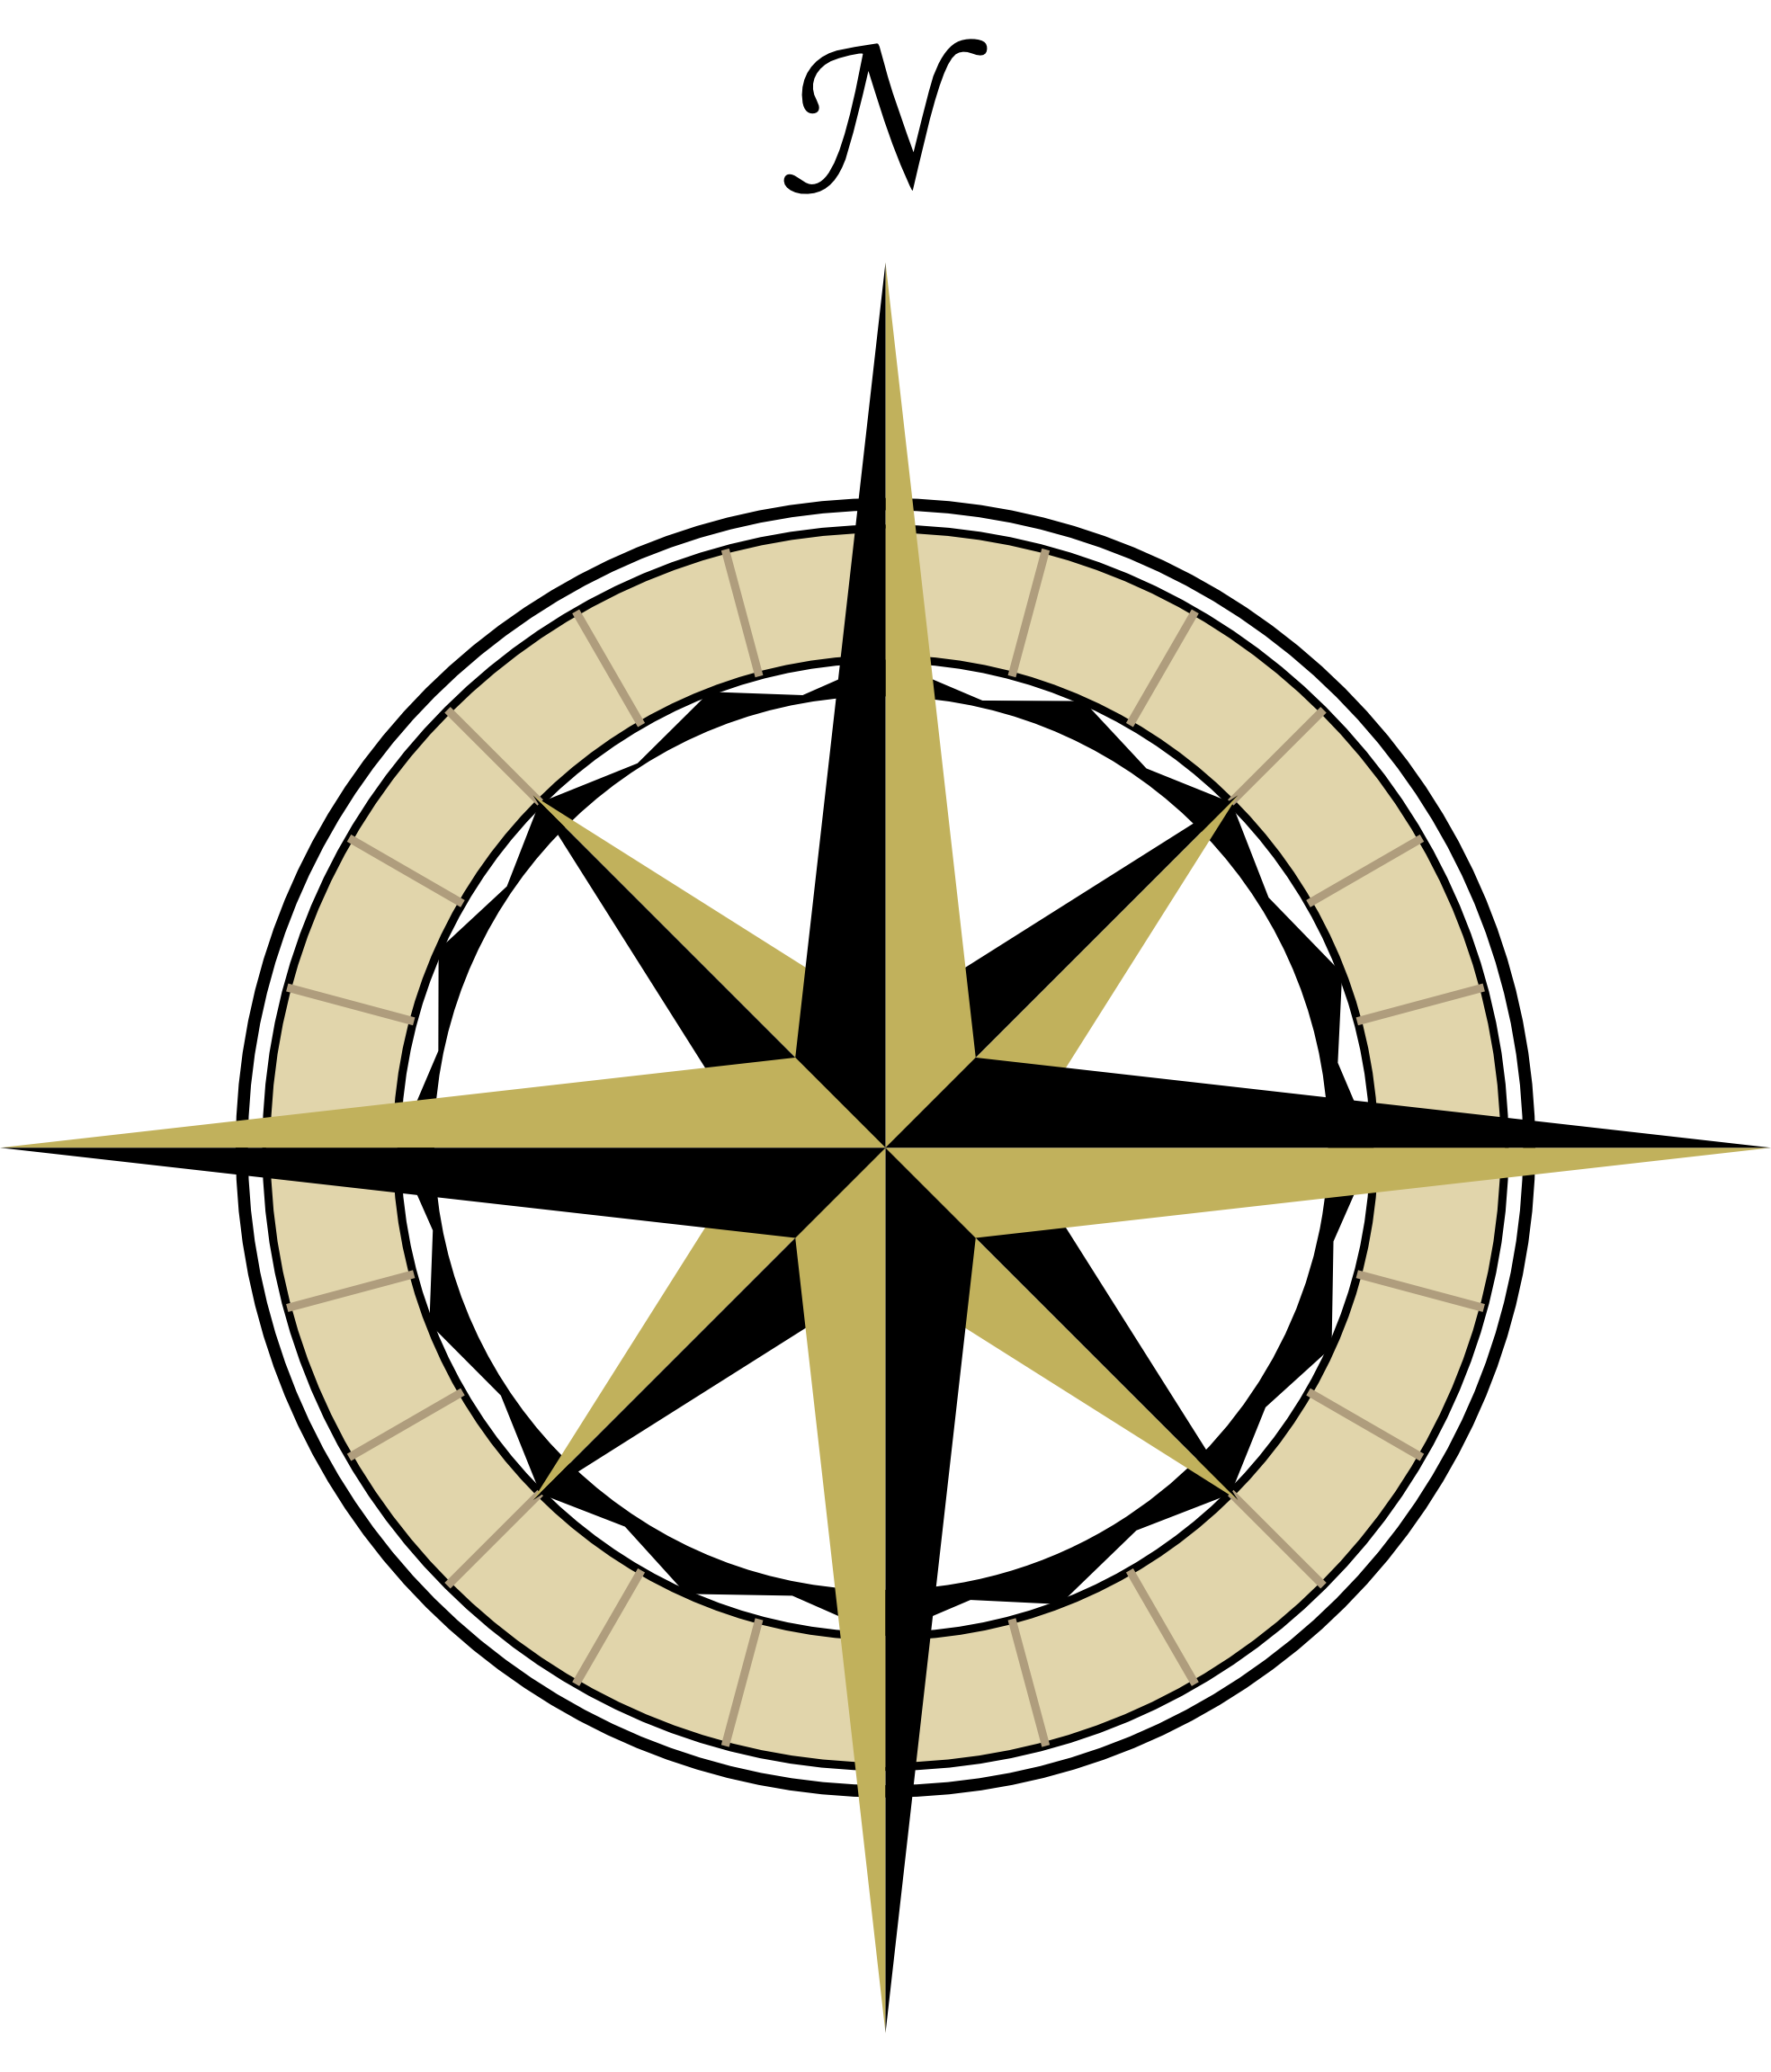 Free Compass Rose Clipart, Download Free Clip Art, Free Clip